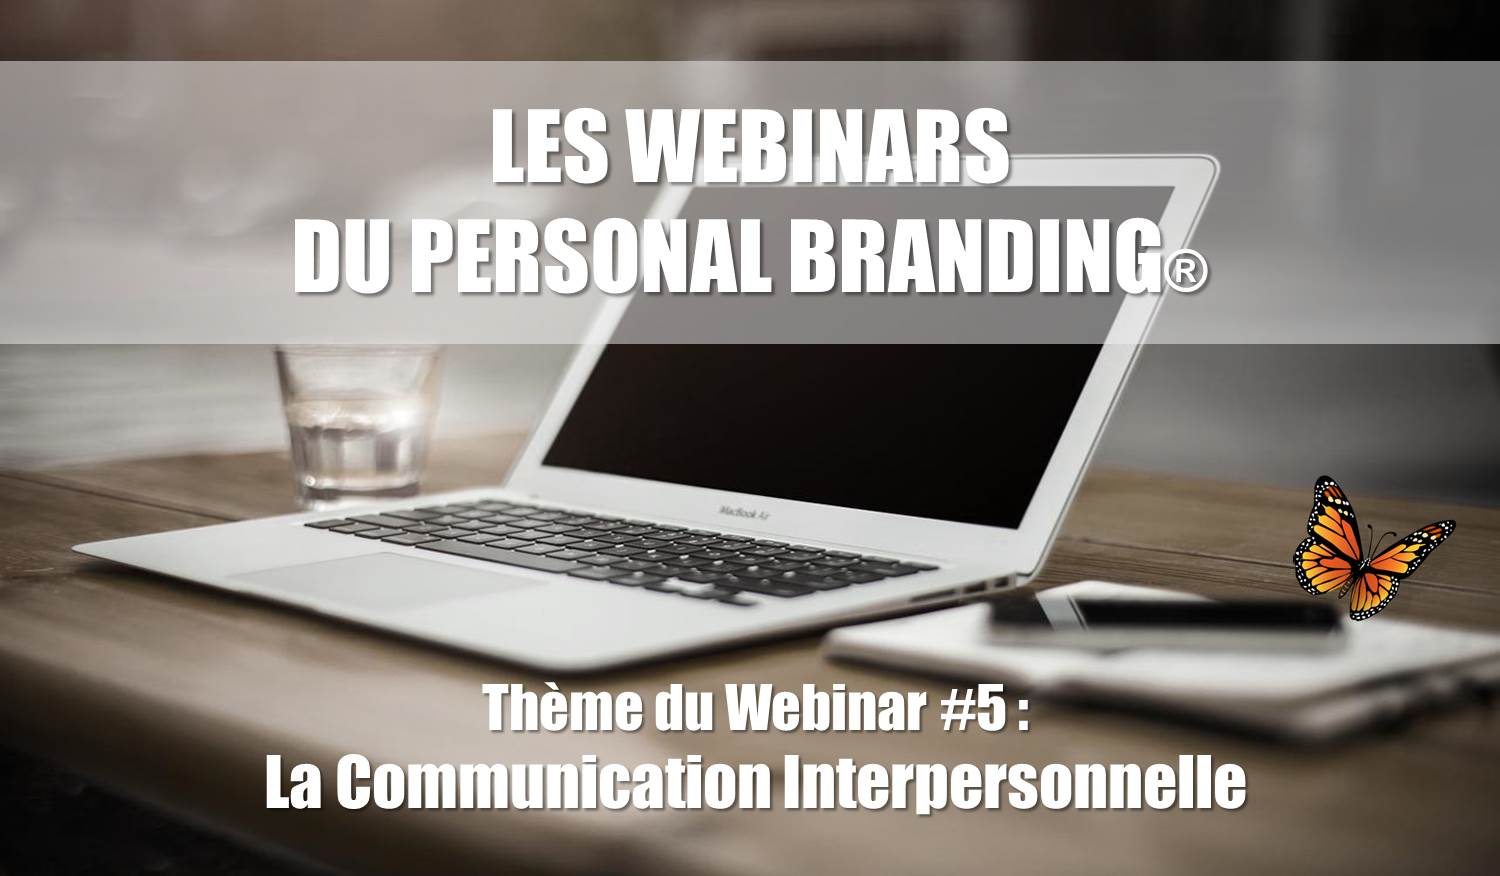 Participez gratuitement au Webinar 5 du Personal Branding sur la Communication Interpersonnelle